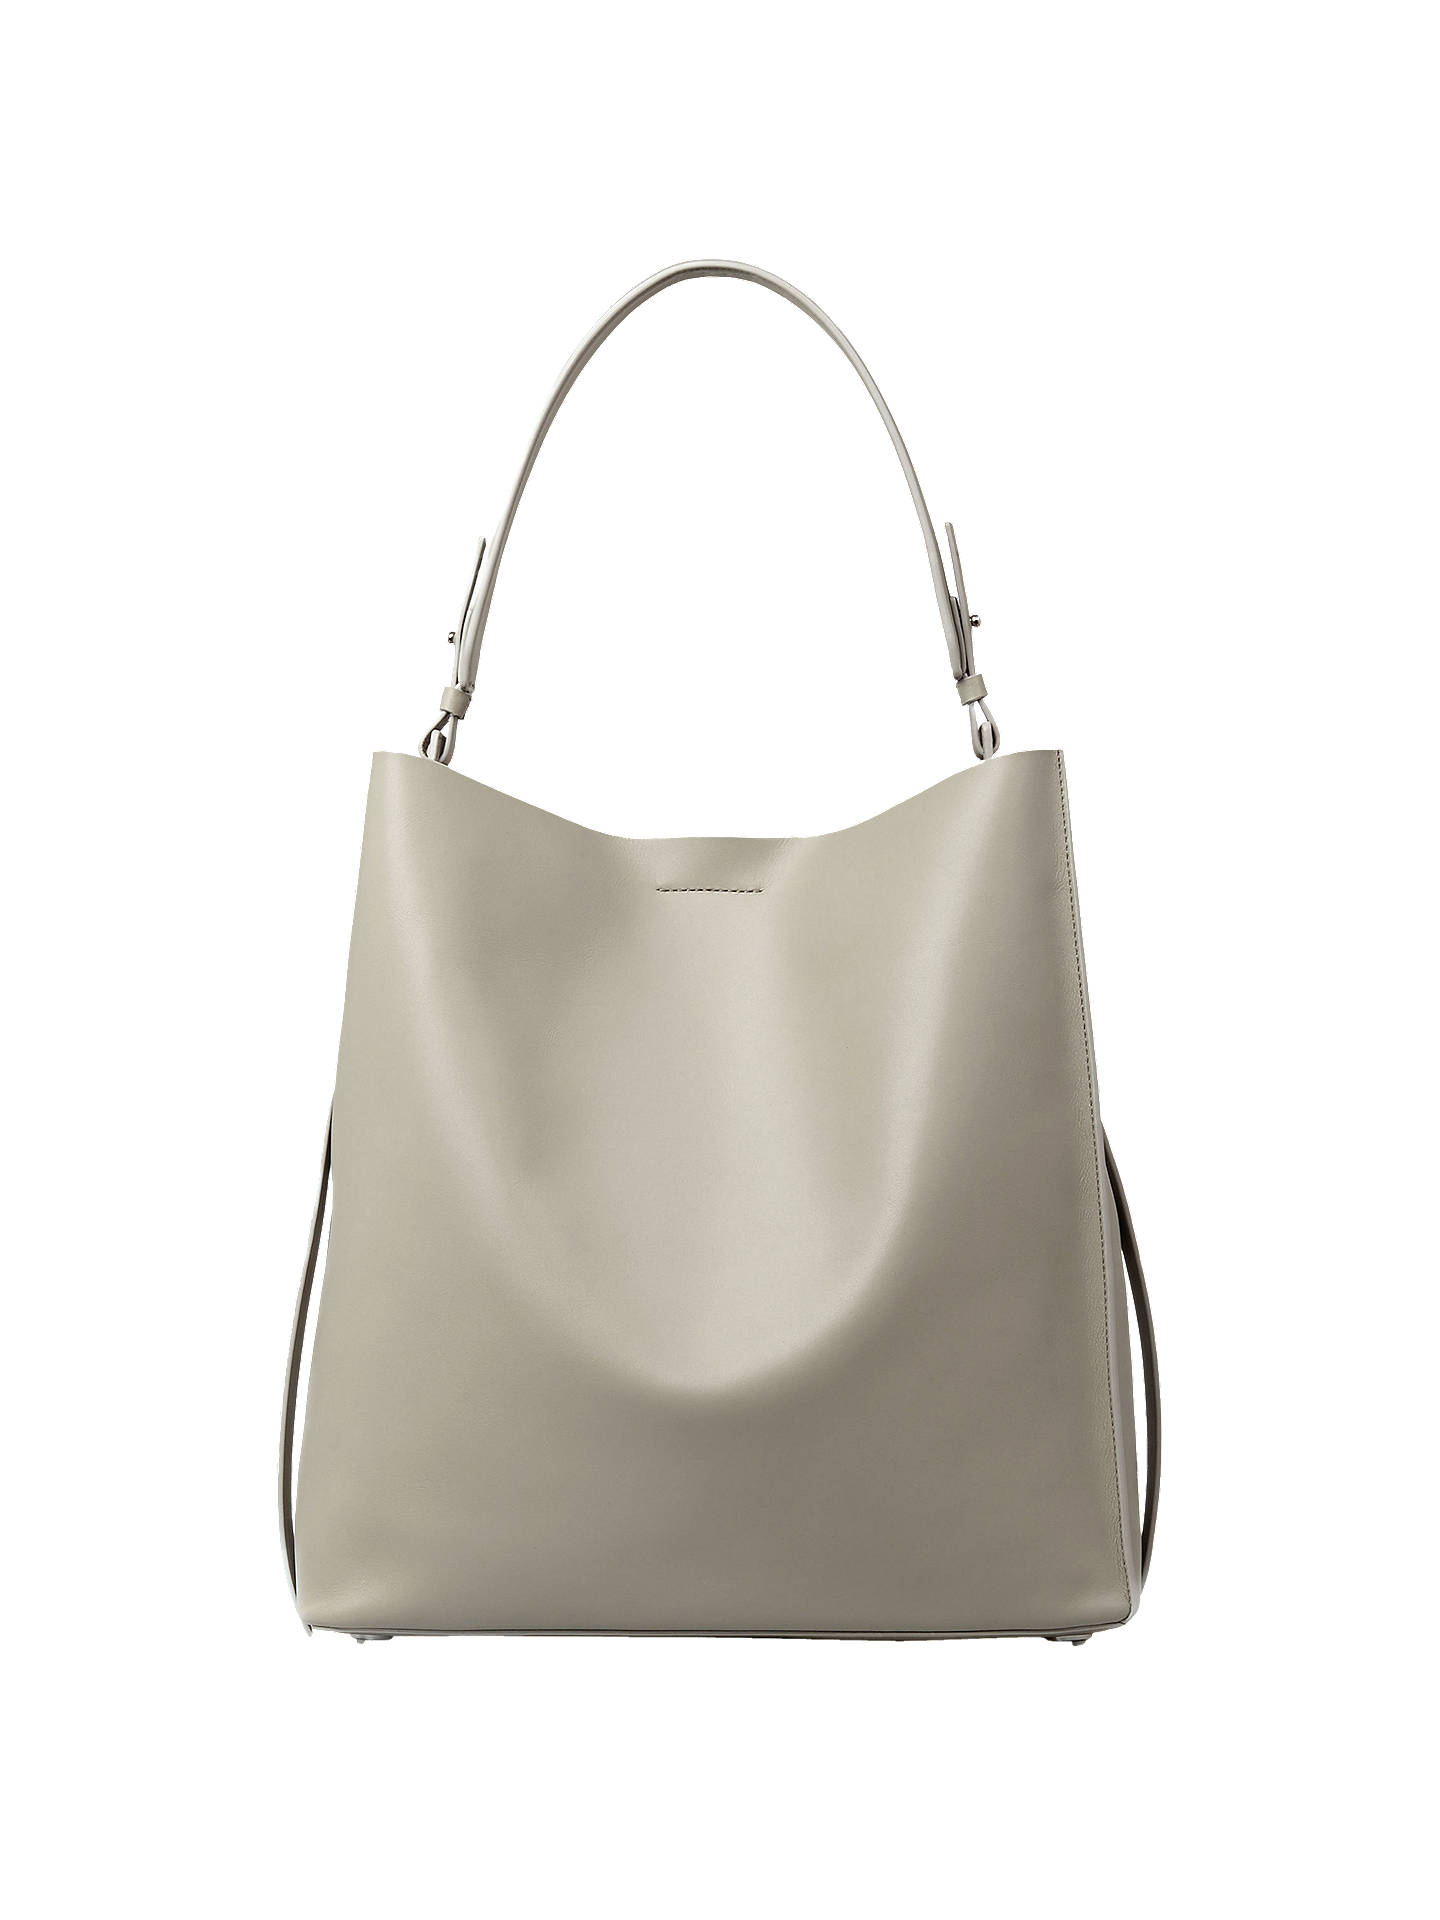 2175c0fff5 Buy AllSaints Paradise Leather North South Tote Bag